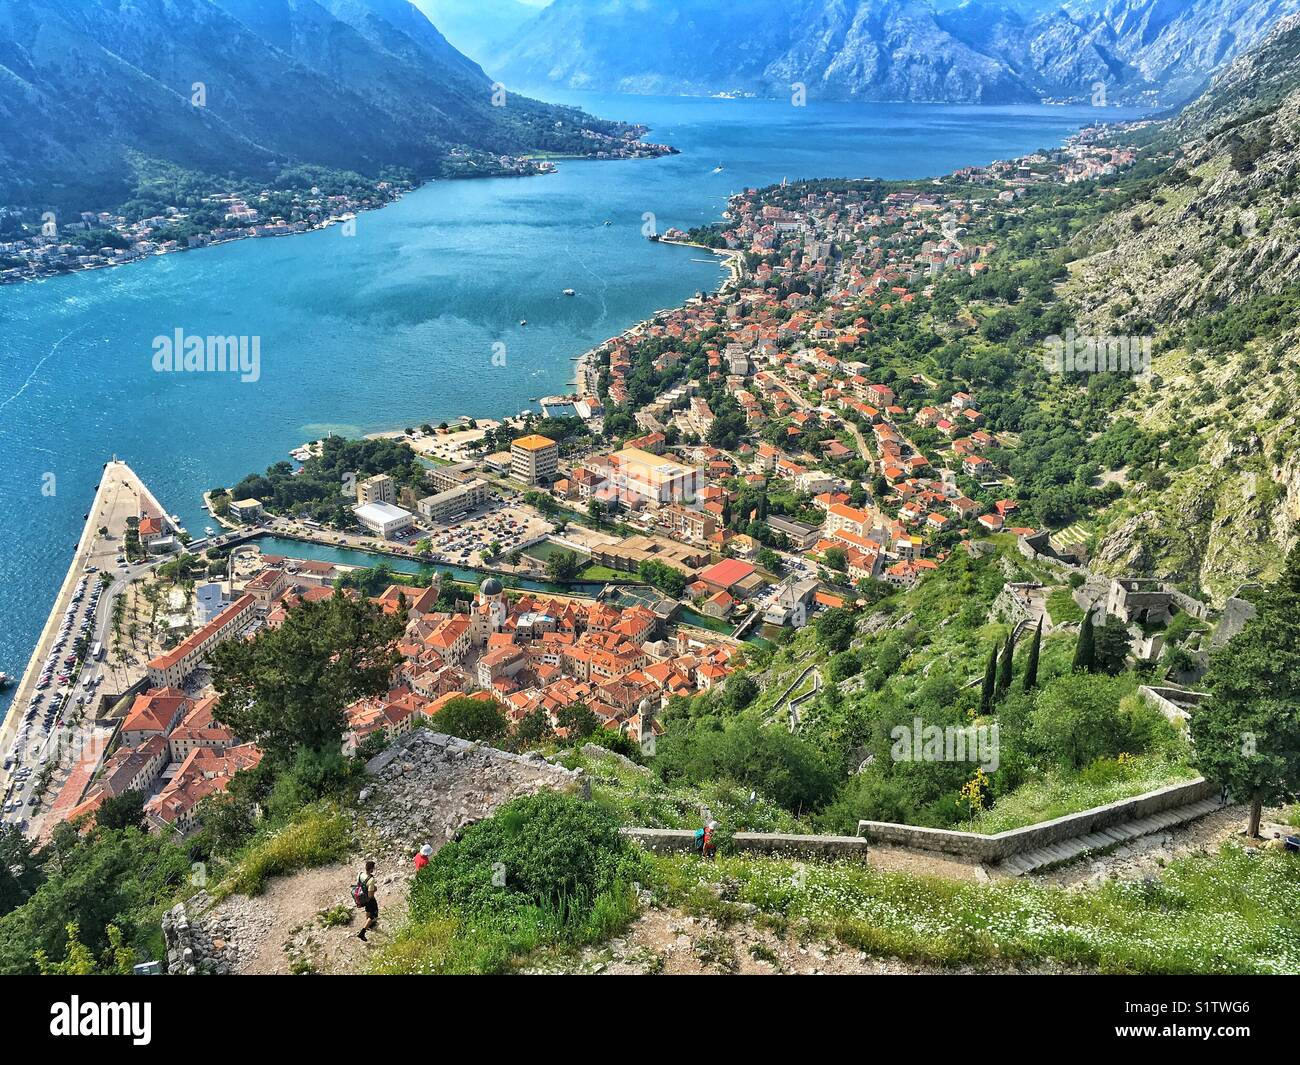 Aerial view of Kotor town in Montenegro Stock Photo